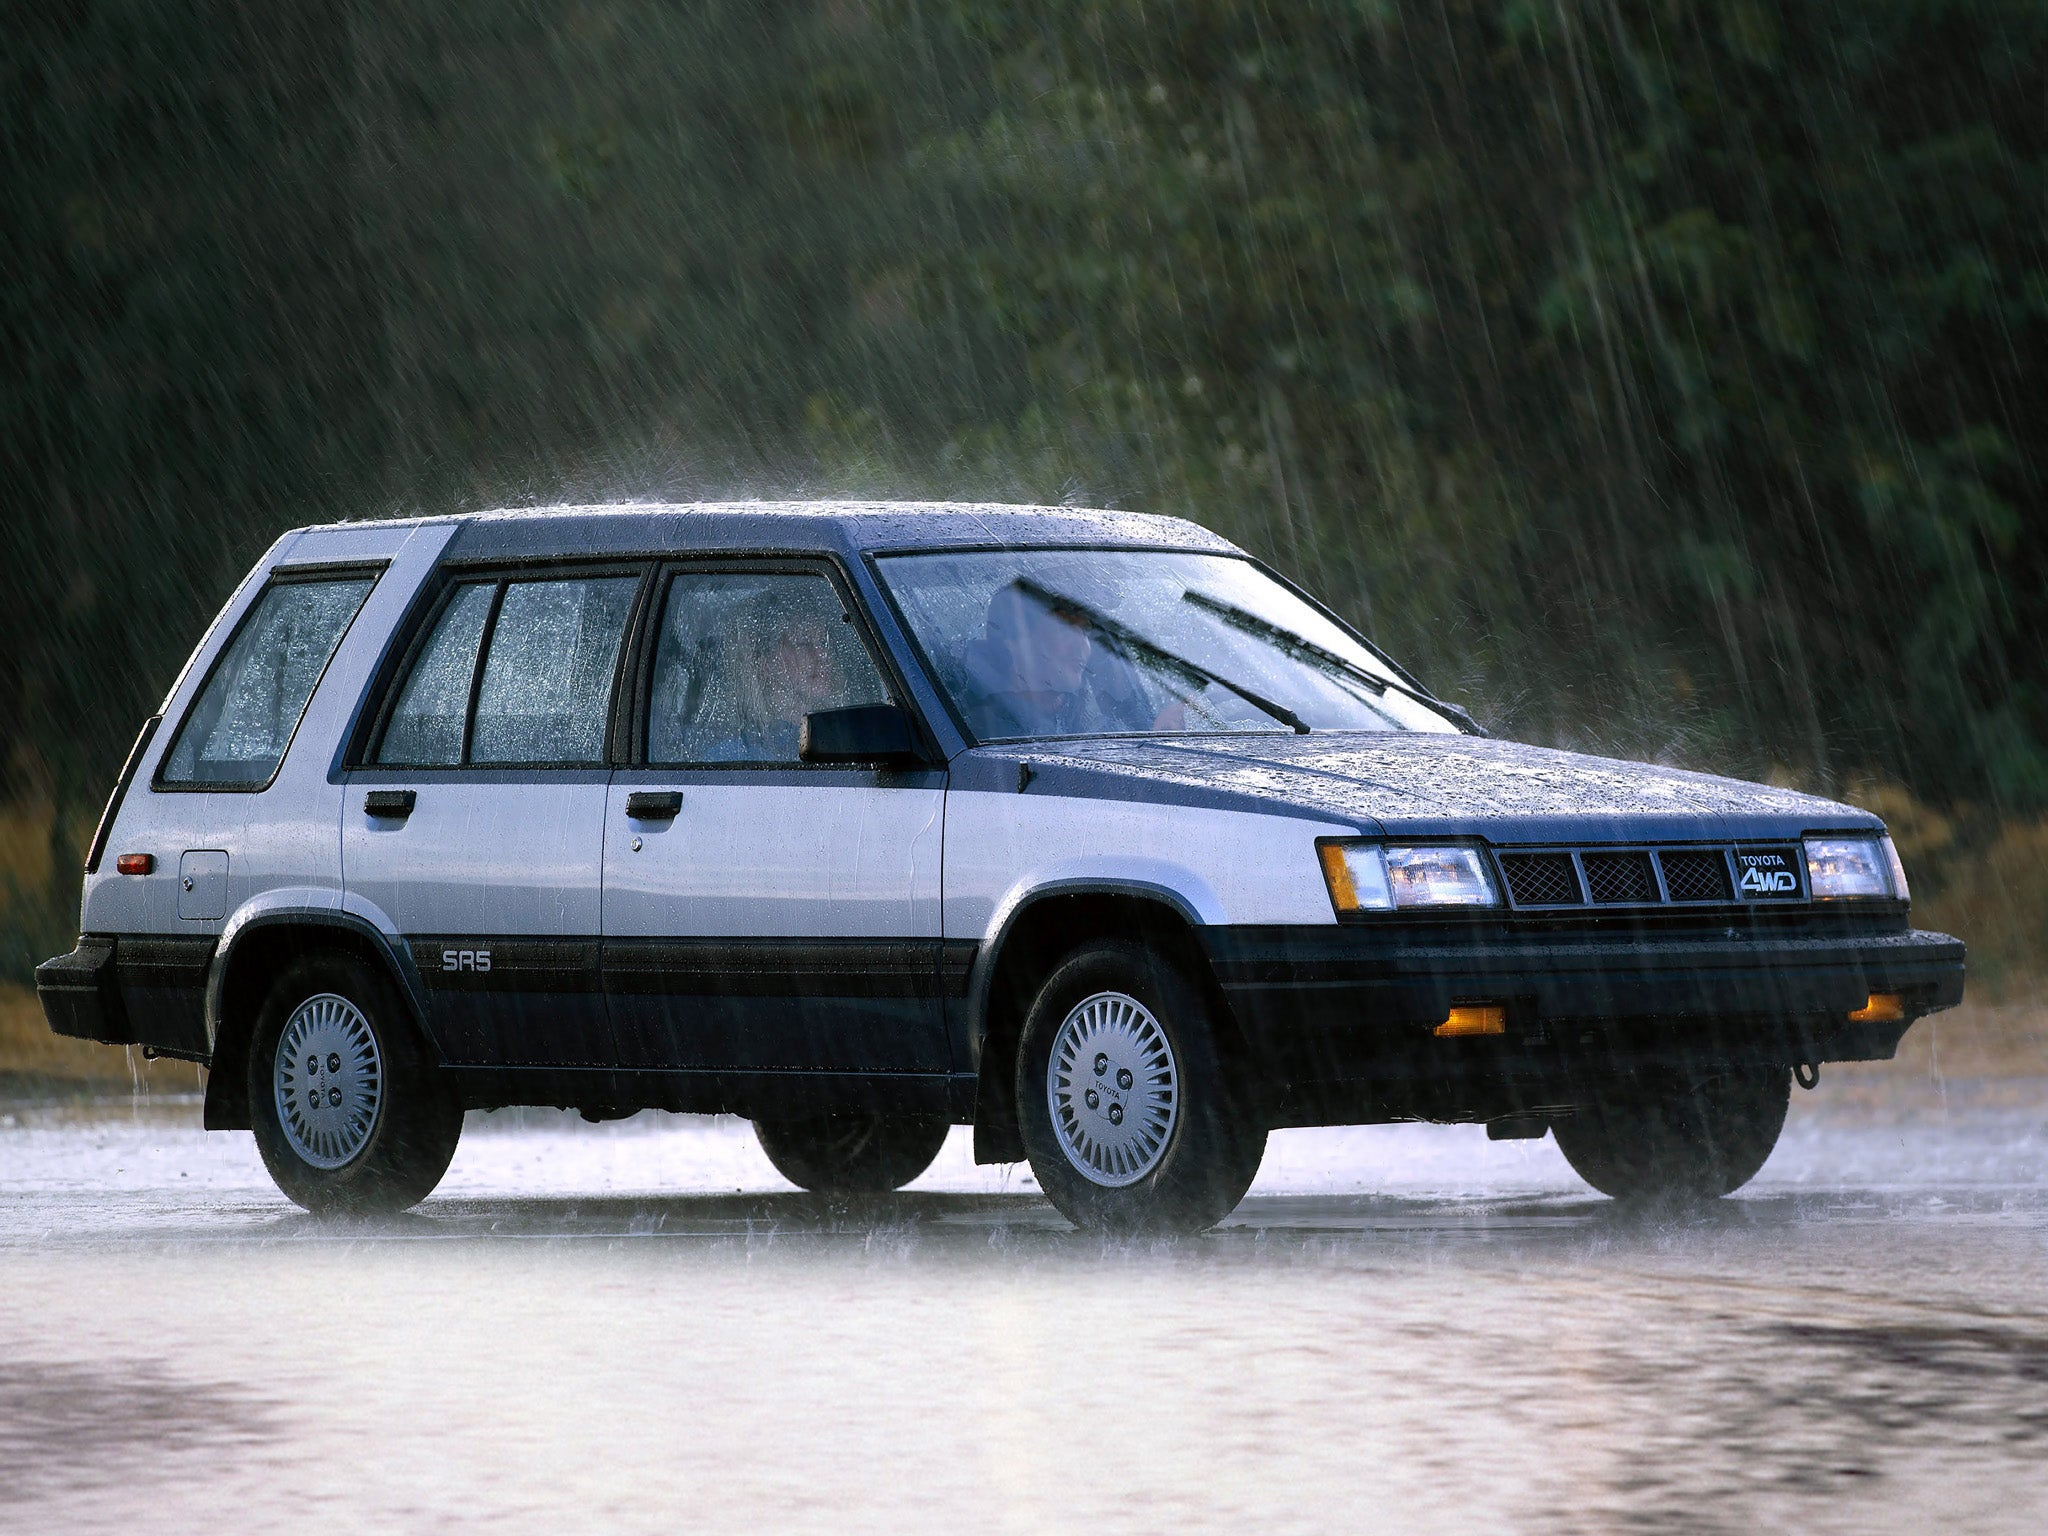 the 4wd toyota tercel sr5 was an inspiring rally wagon for visionaries rh oppositelock kinja com toyota tercel wagon for sale california toyota tercel wagon 4wd for sale